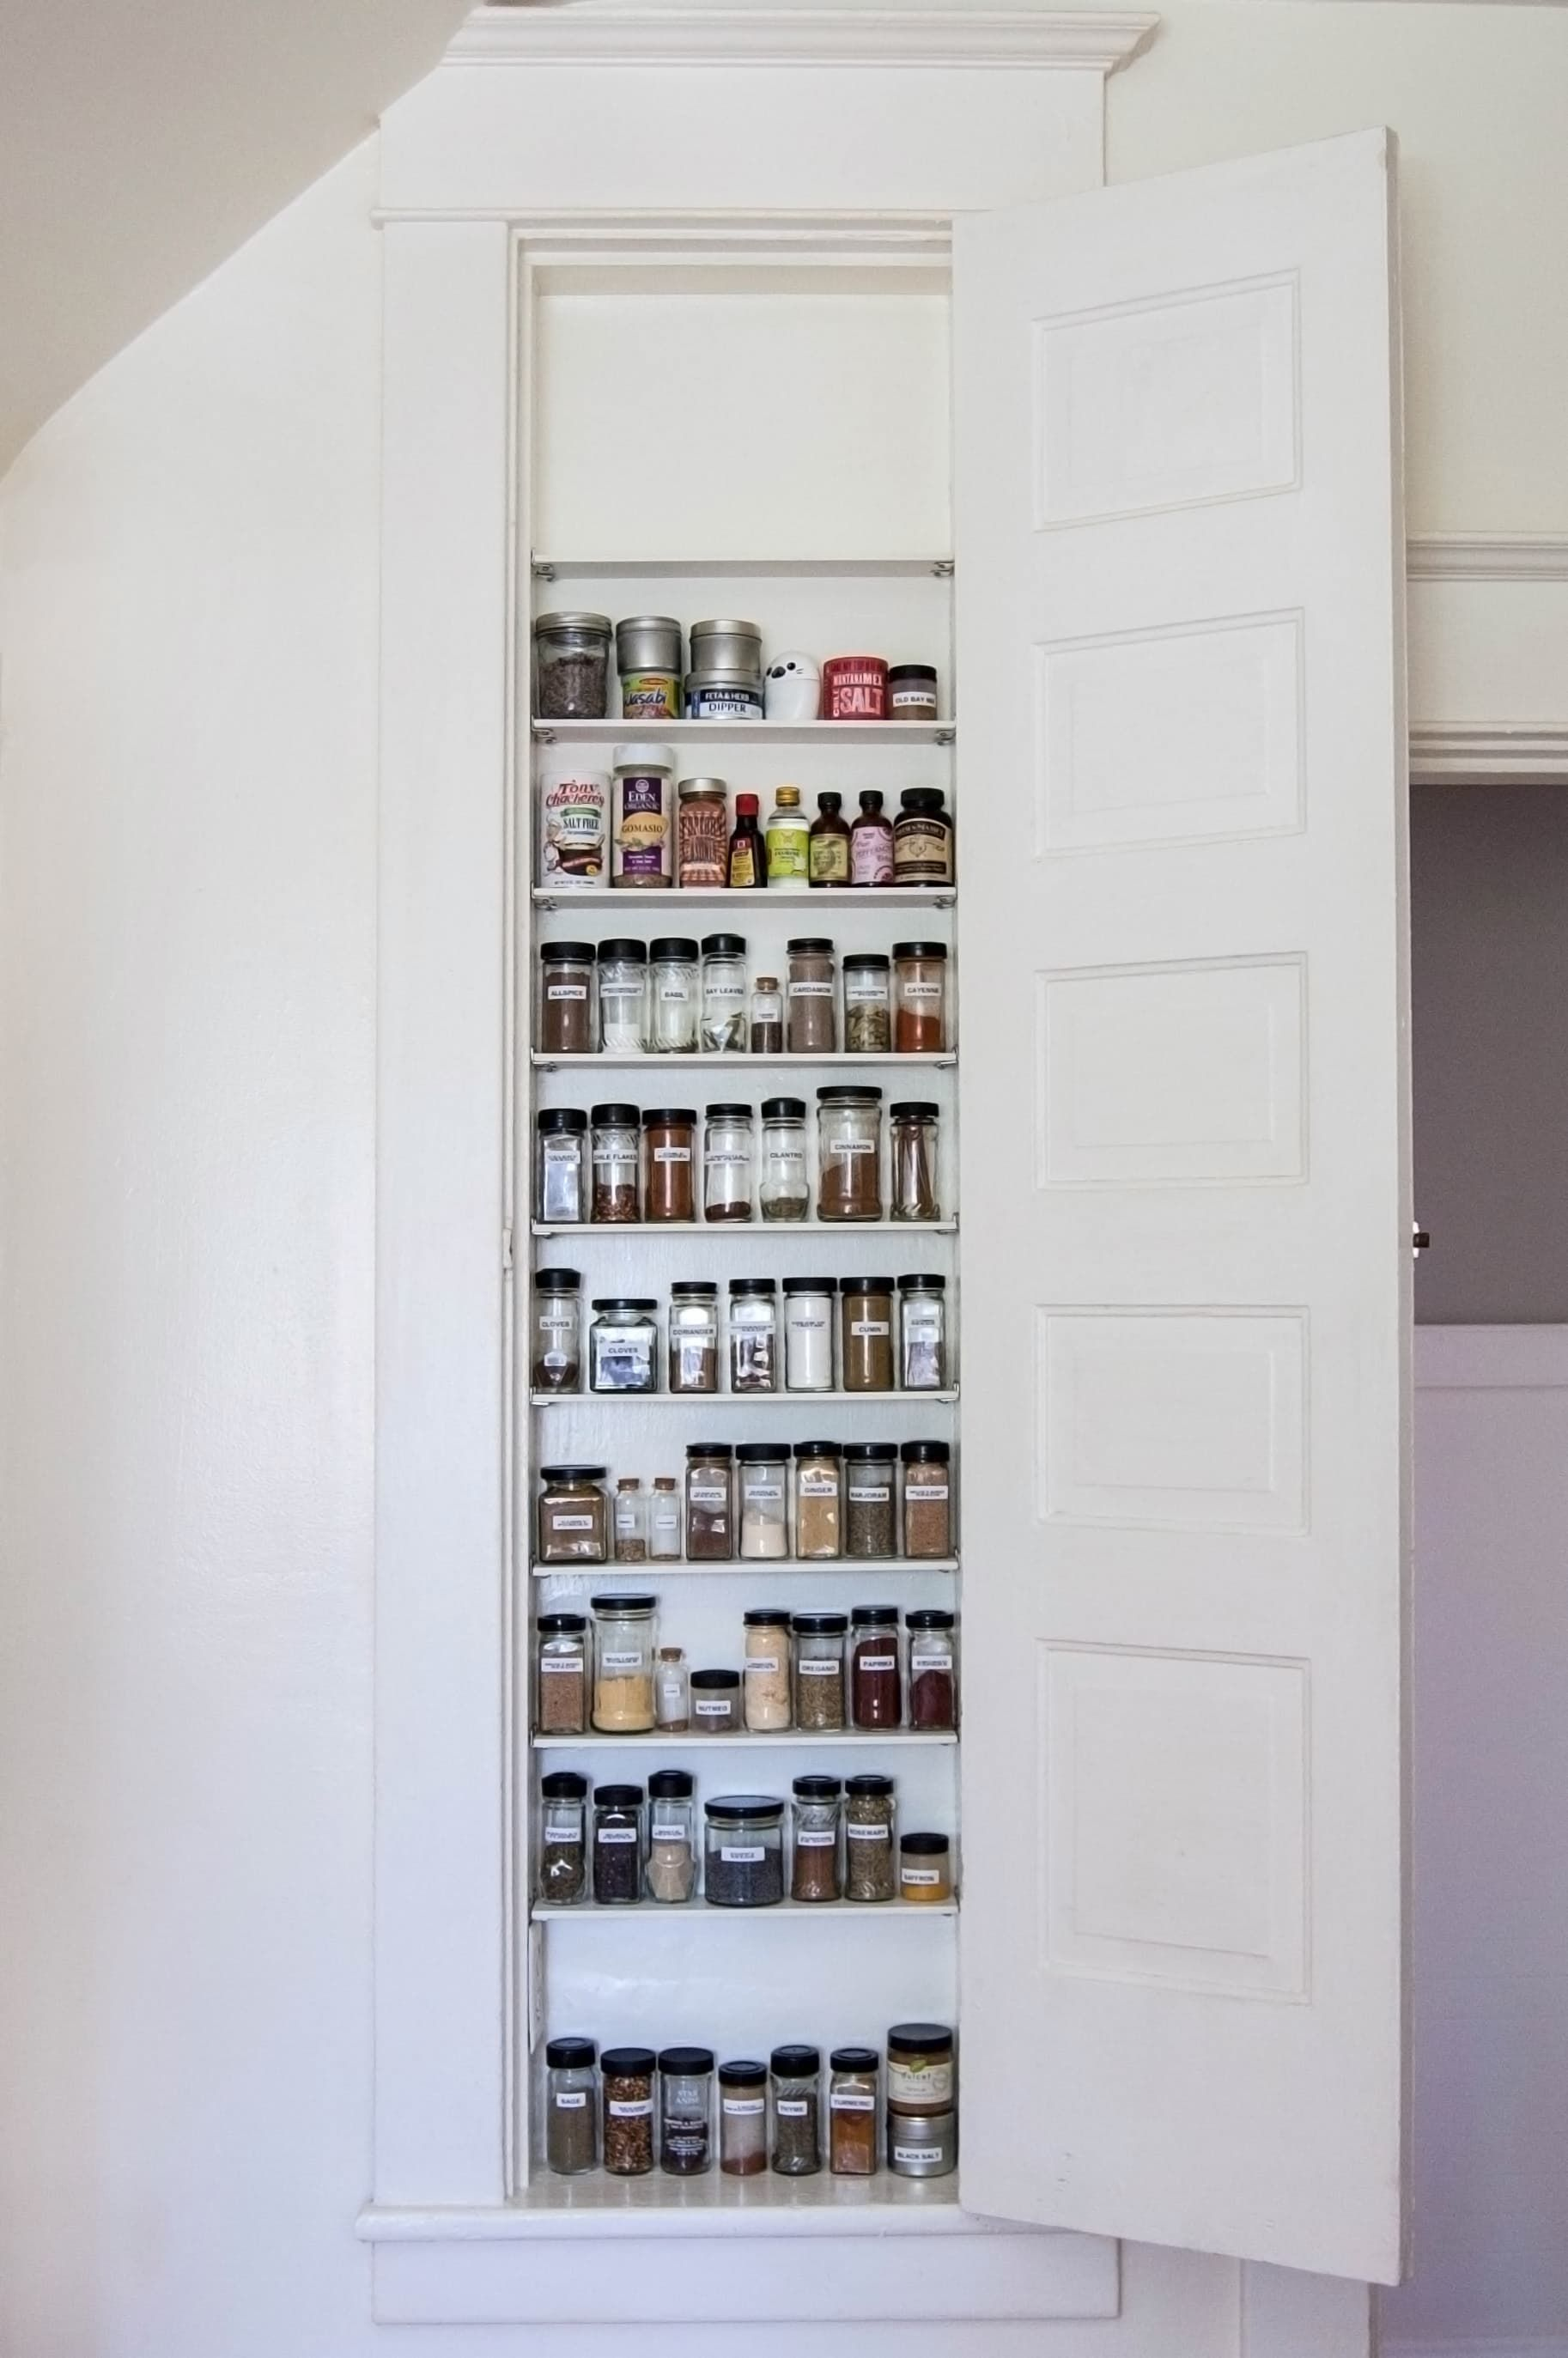 Build a spice cabinet in between the wall studs heres how hidden cabinet hacks dramatically increased my kitchen storage apartment therapy